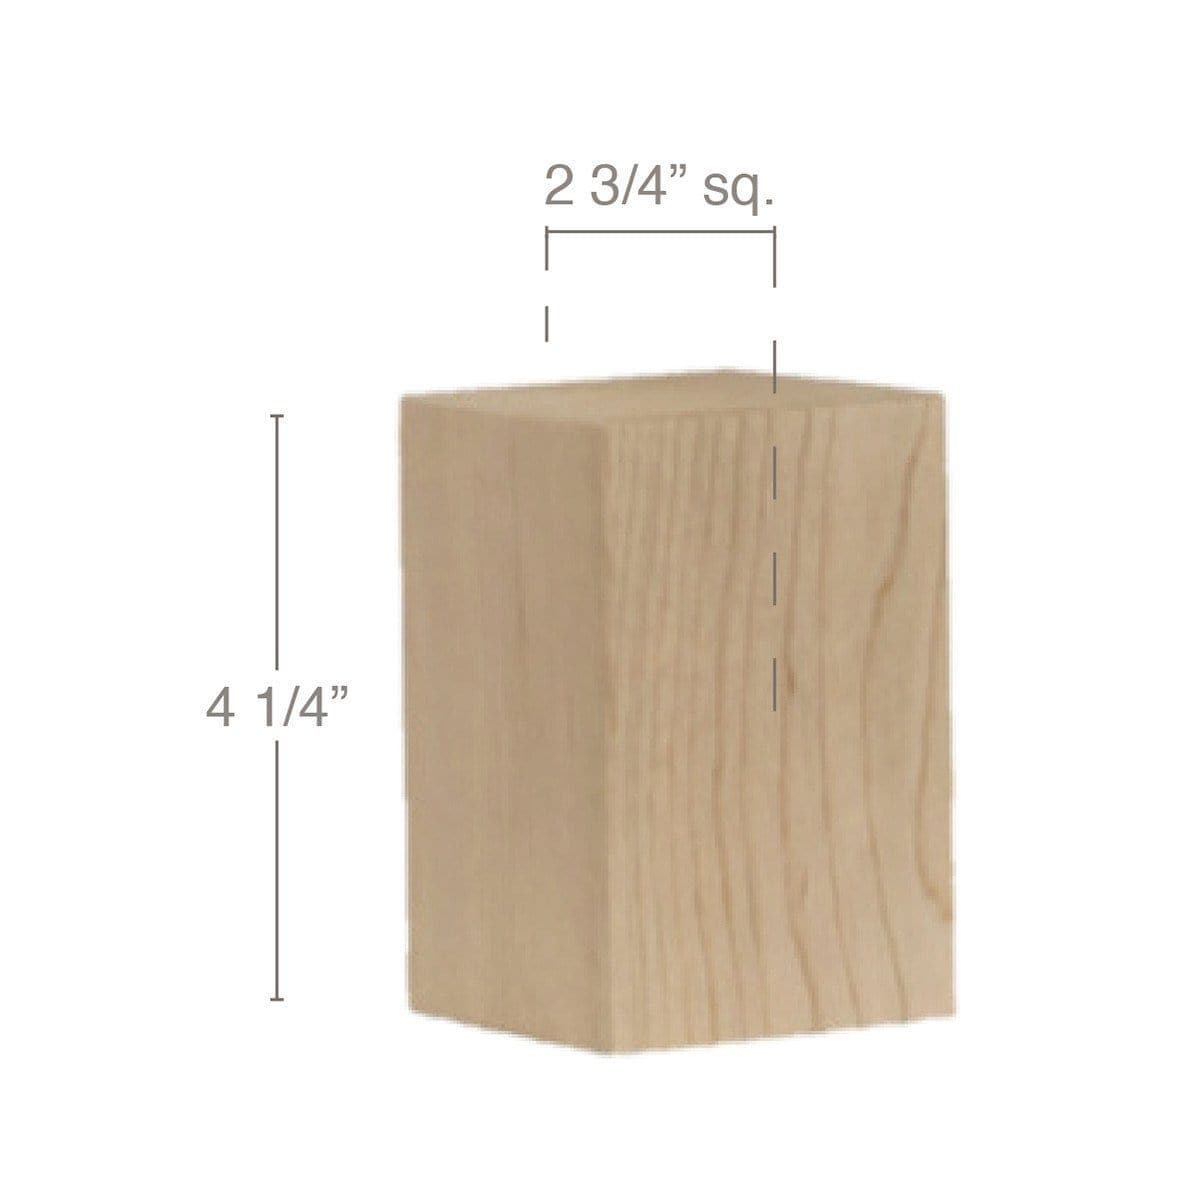 "Contemporary Tall Straight Square Bun Foot, 2 3/4""sq. x 4 1/4""h"